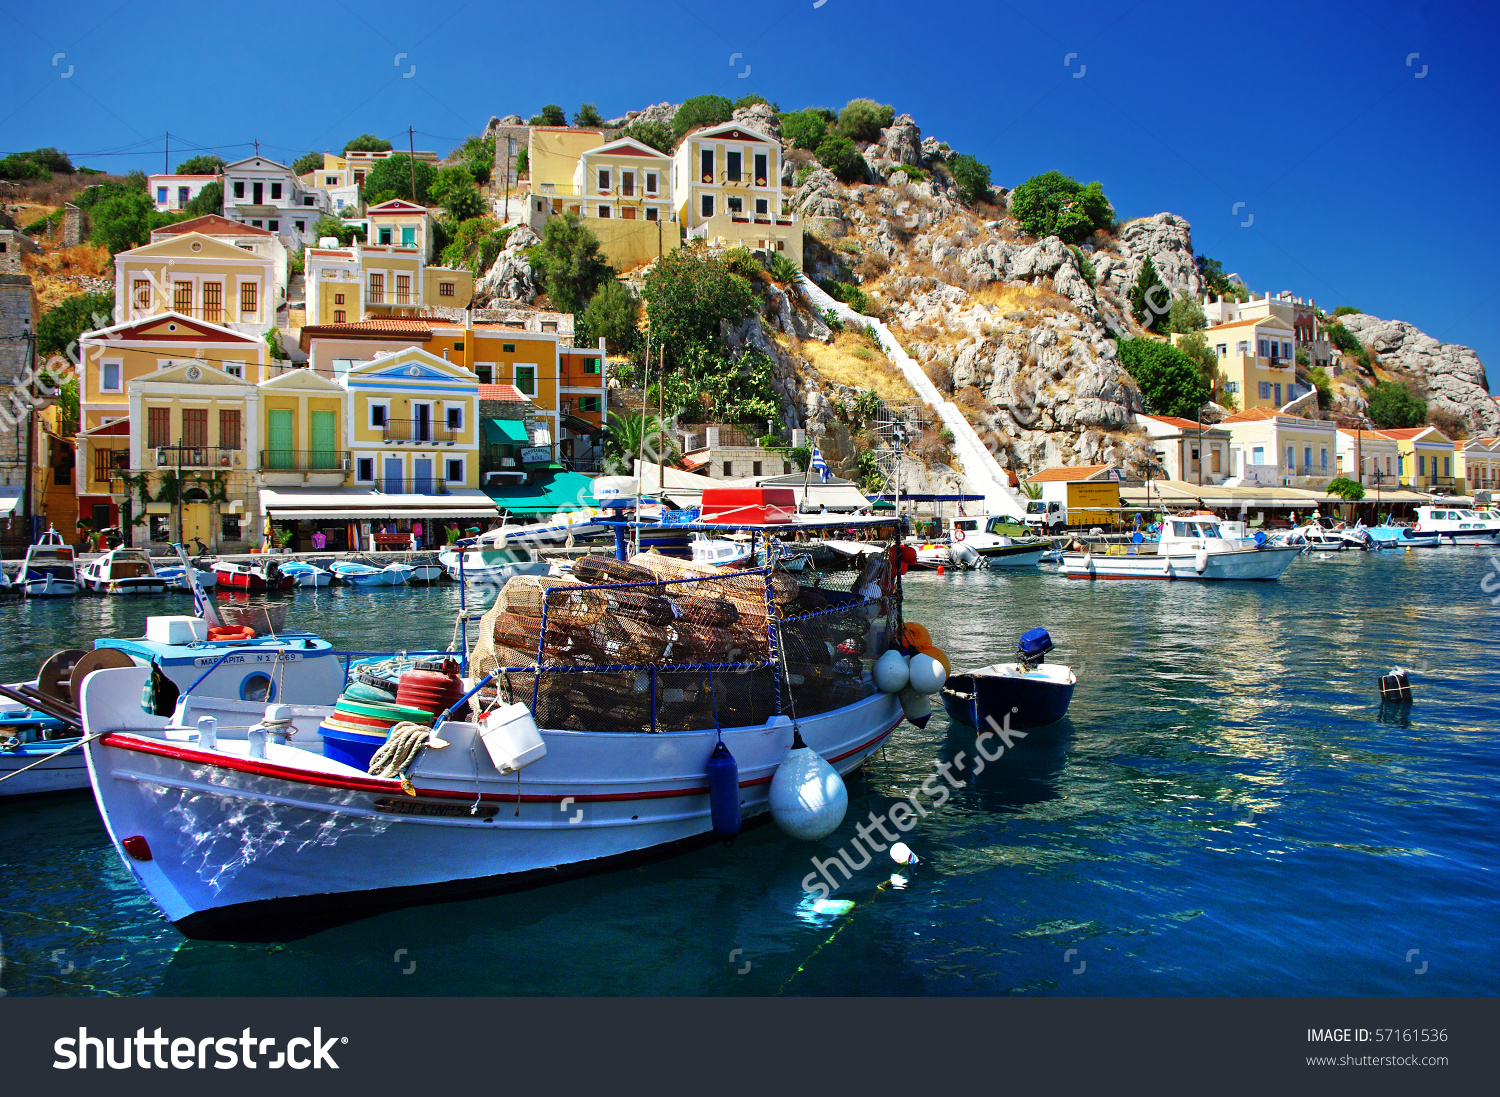 Amazing Greece Pictorial Island Symi Stock Photo 57161536.